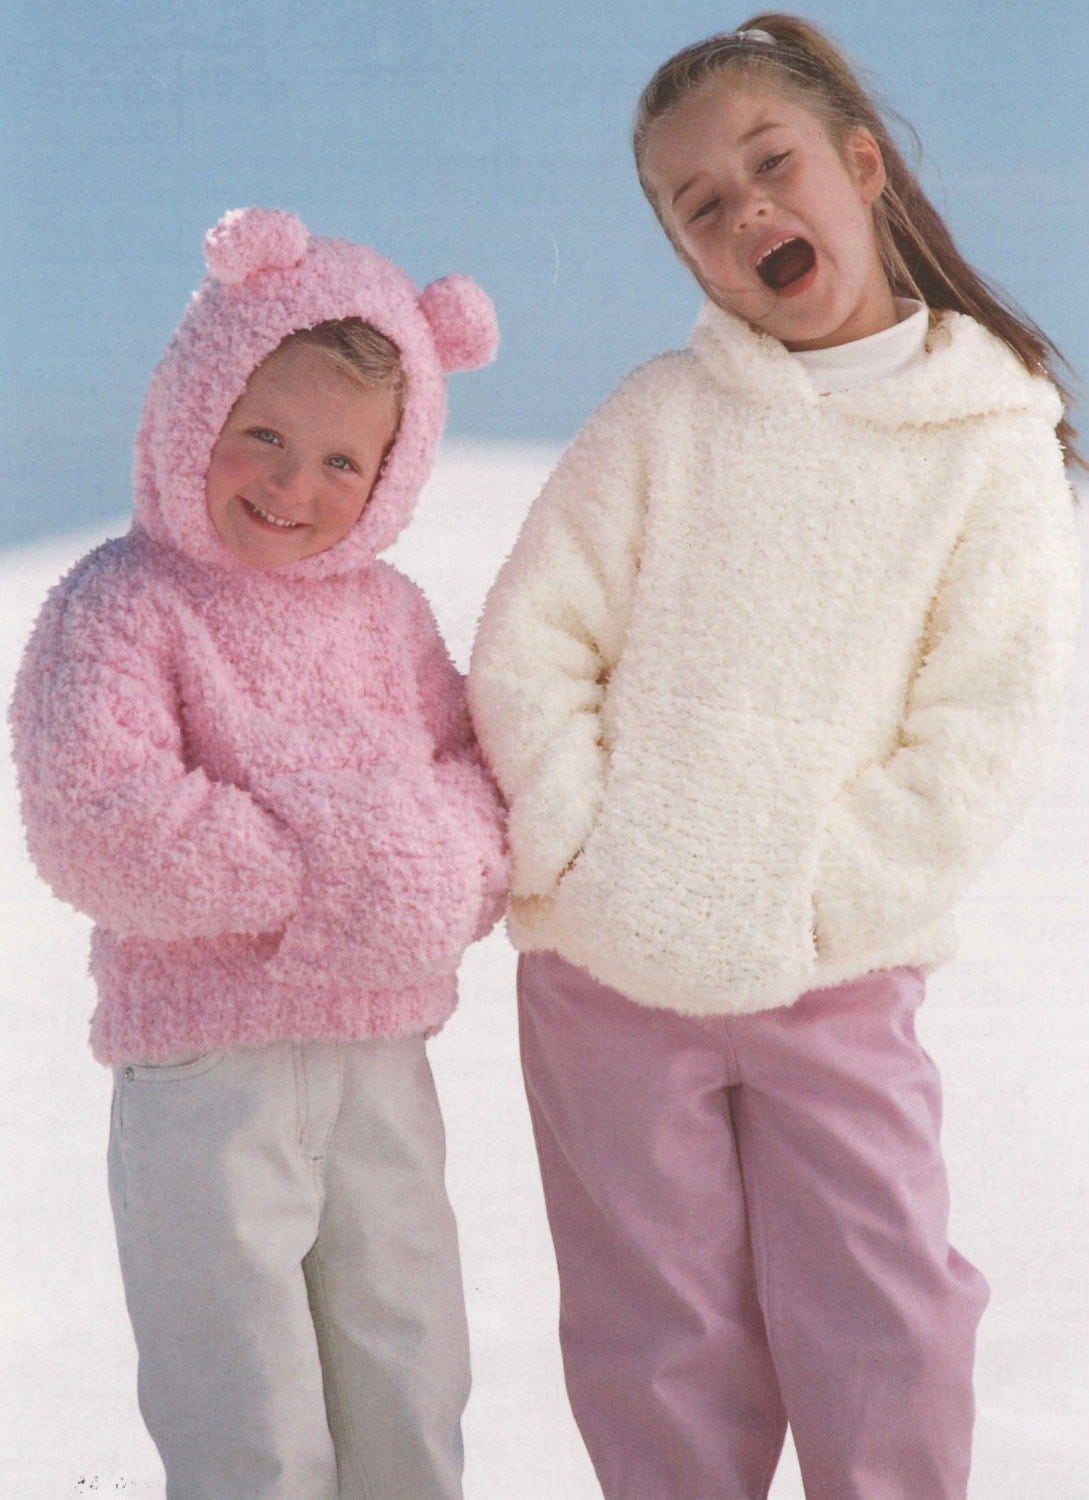 Knitting Pattern Hood With Ears : Knit Hooded Sweater with Ears Kids Toddler by ...